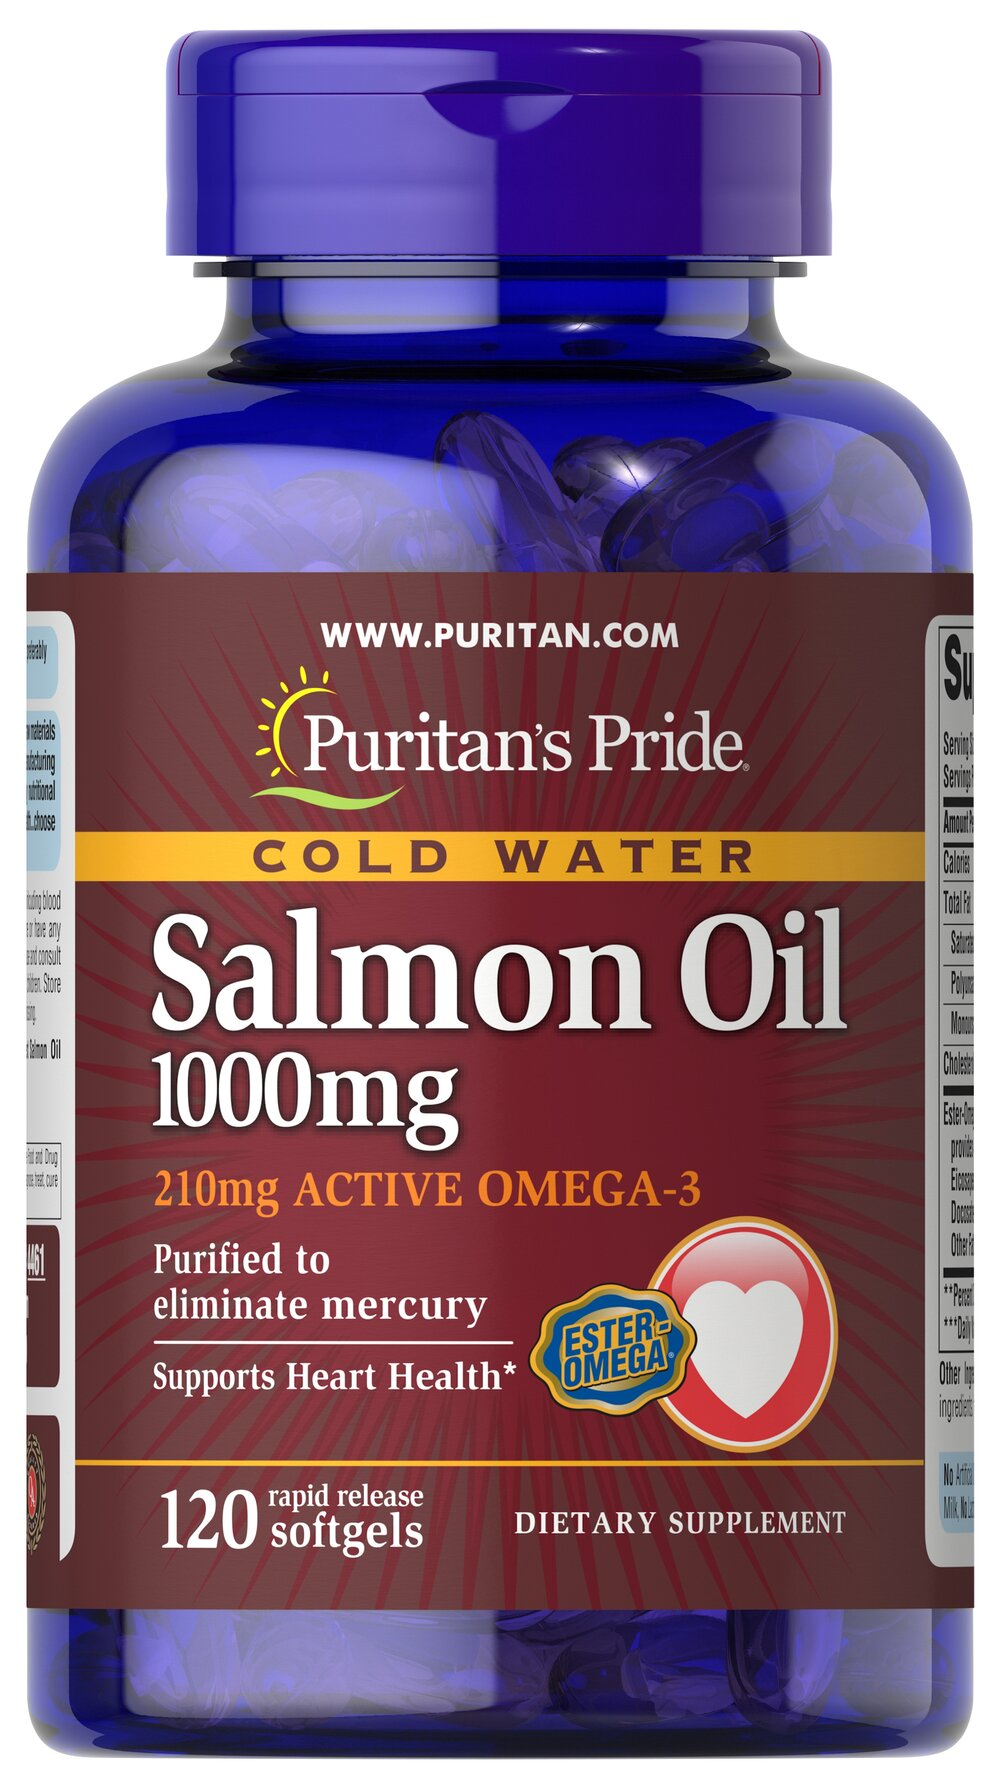 Omega-3 Salmon Oil 1000 mg (210 mg Active Omega-3)  120 Softgels 1000 mg $22.99